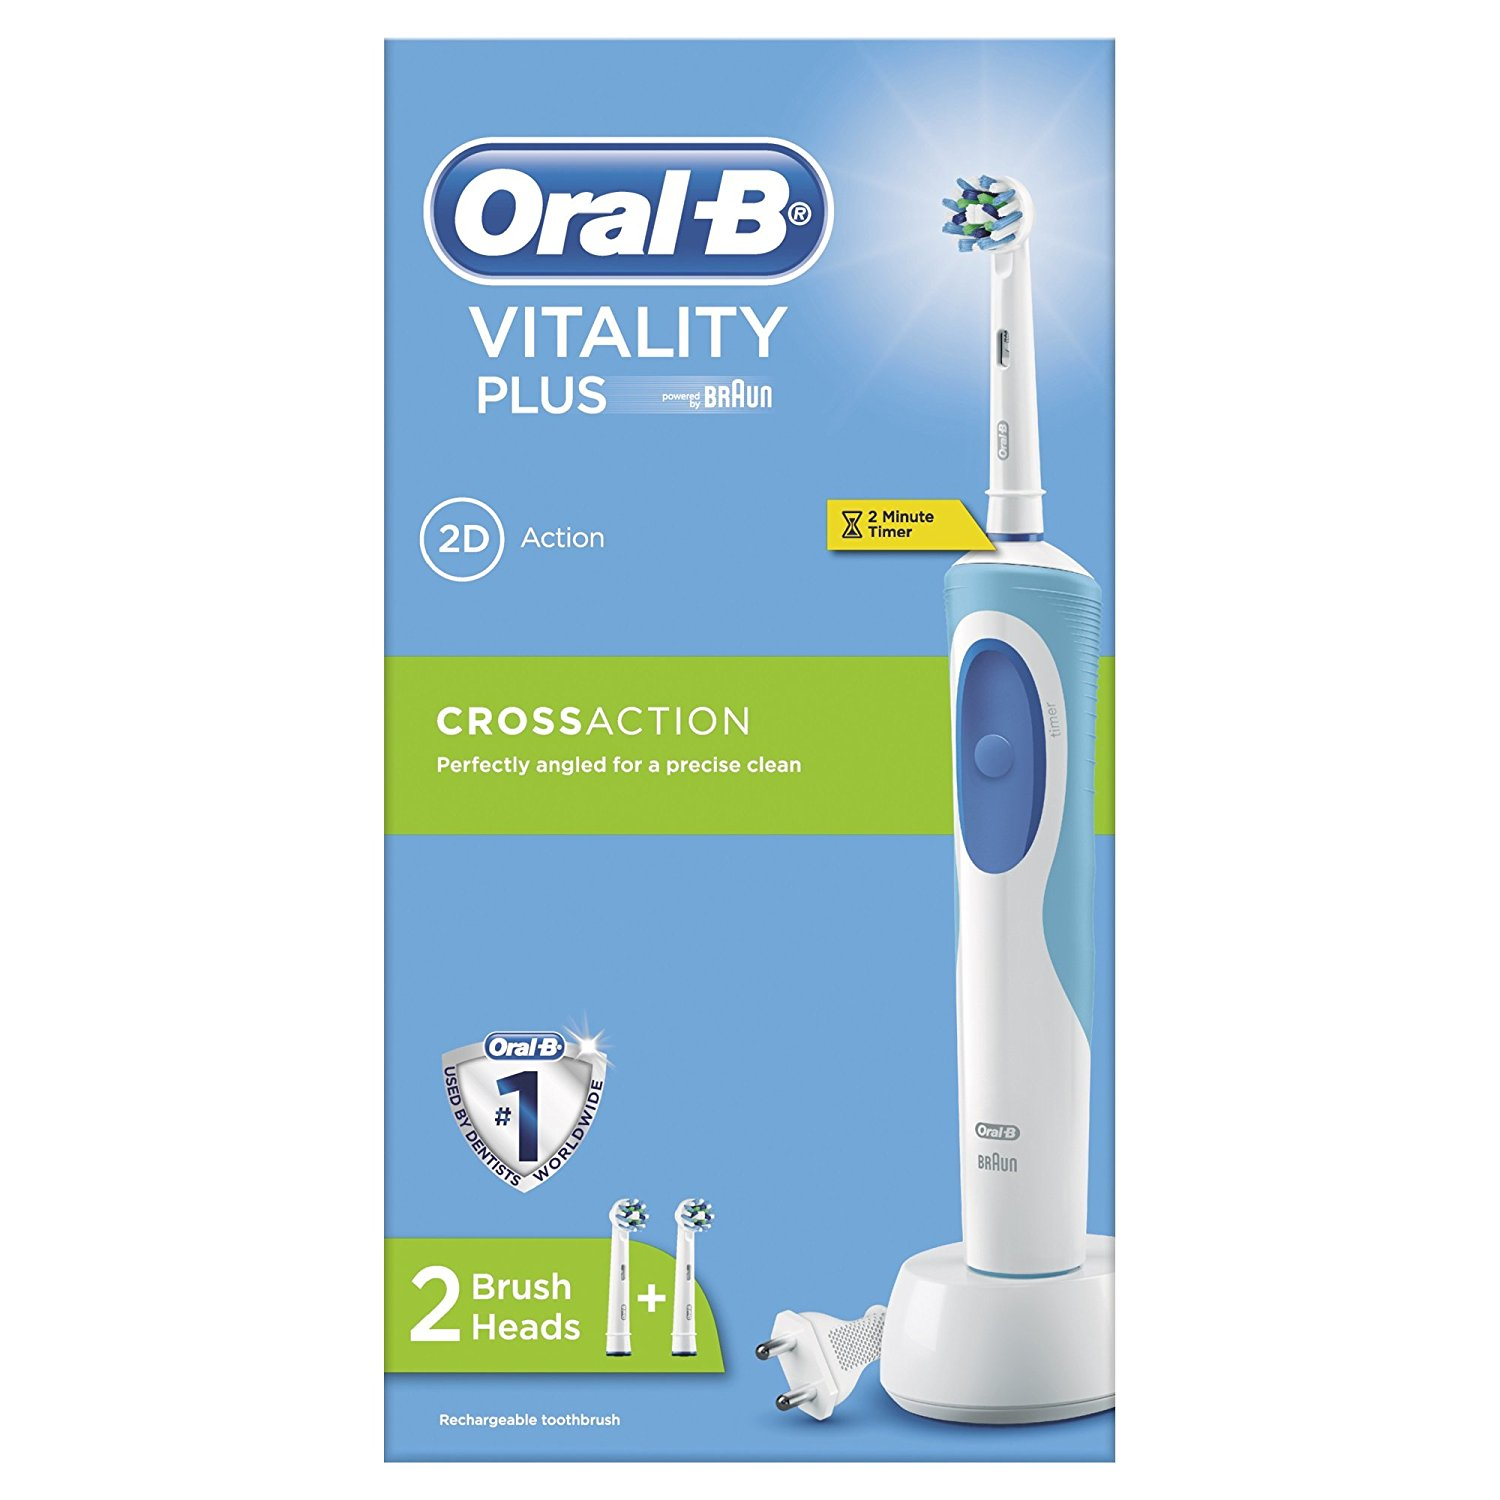 Details about Oral-B Pro Vitality Plus CrossAction Electric Toothbrush with  2 Minute Timer A